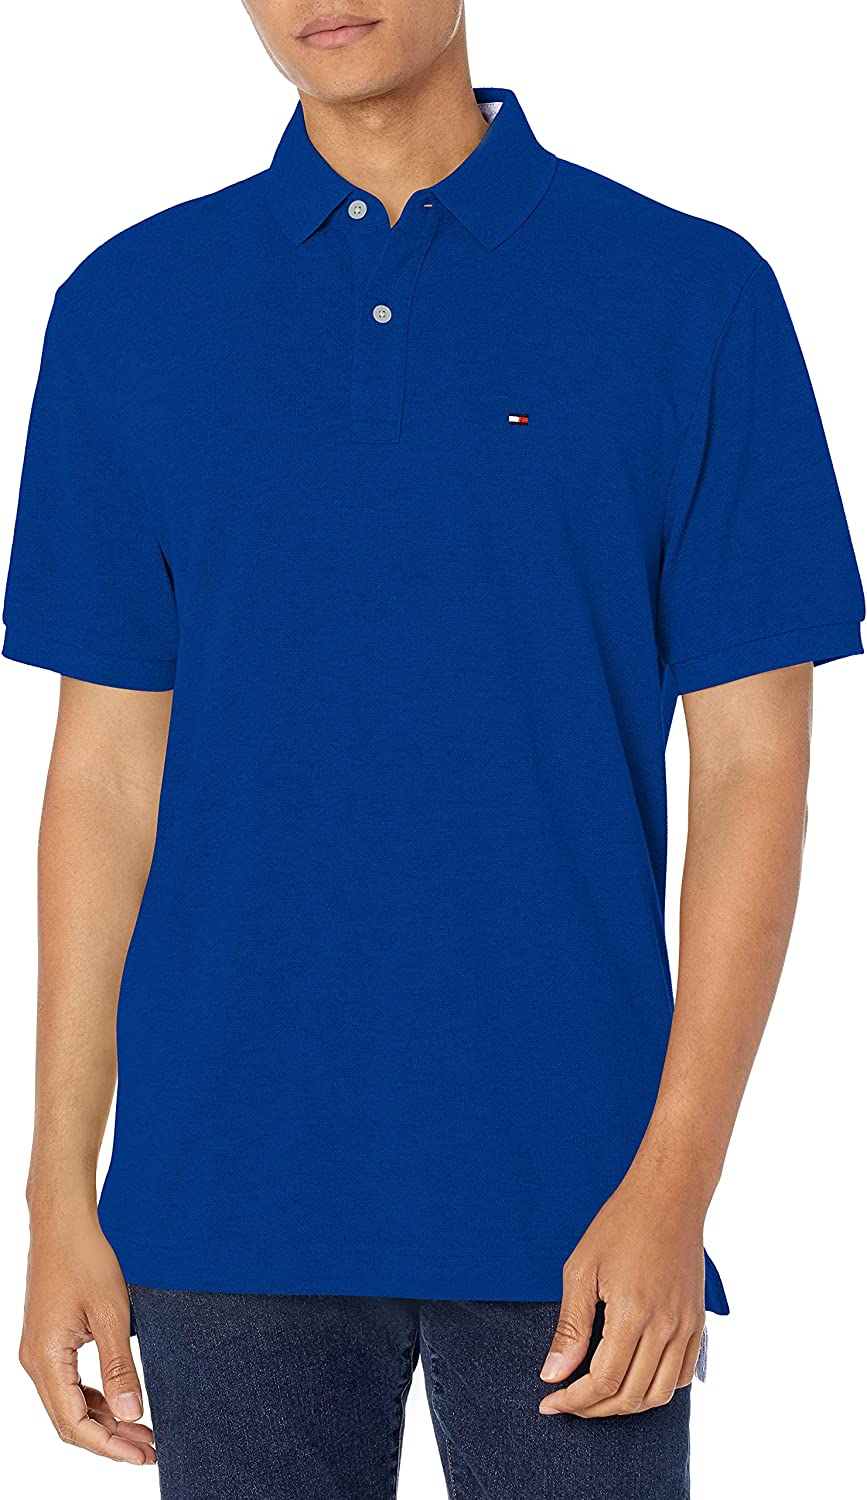 Ranking TOP4 Tommy Hilfiger Men's Short Sleeve Popular product Fit Polo in Shirt Classic